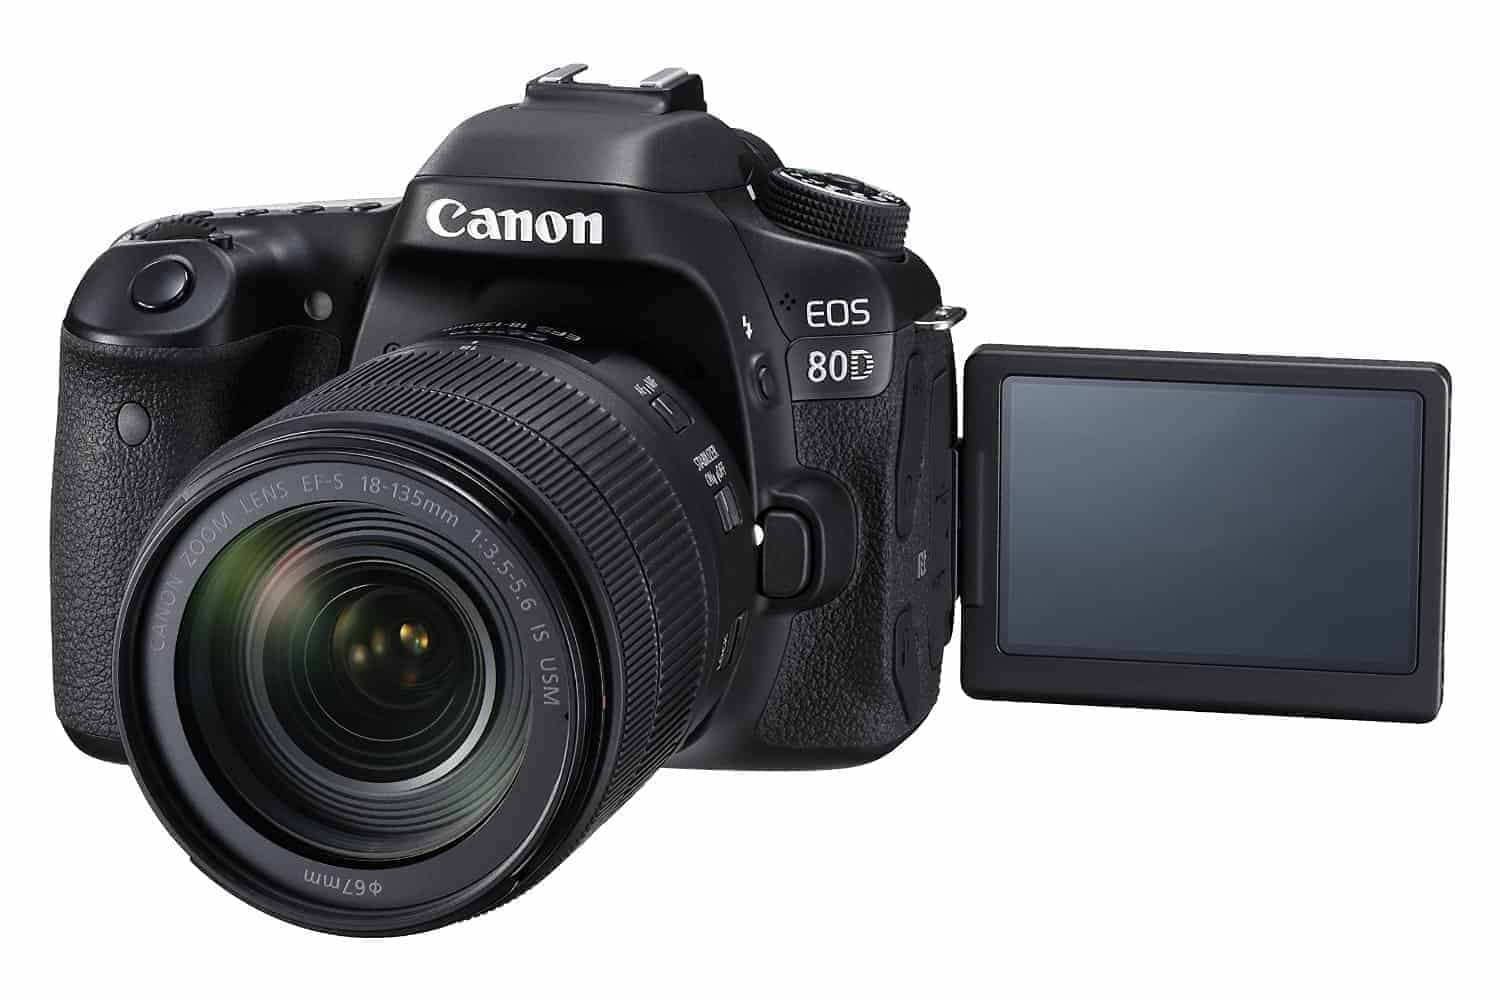 Canon EOS 80D DSLR: Thoughts after 5 months of shooting videos